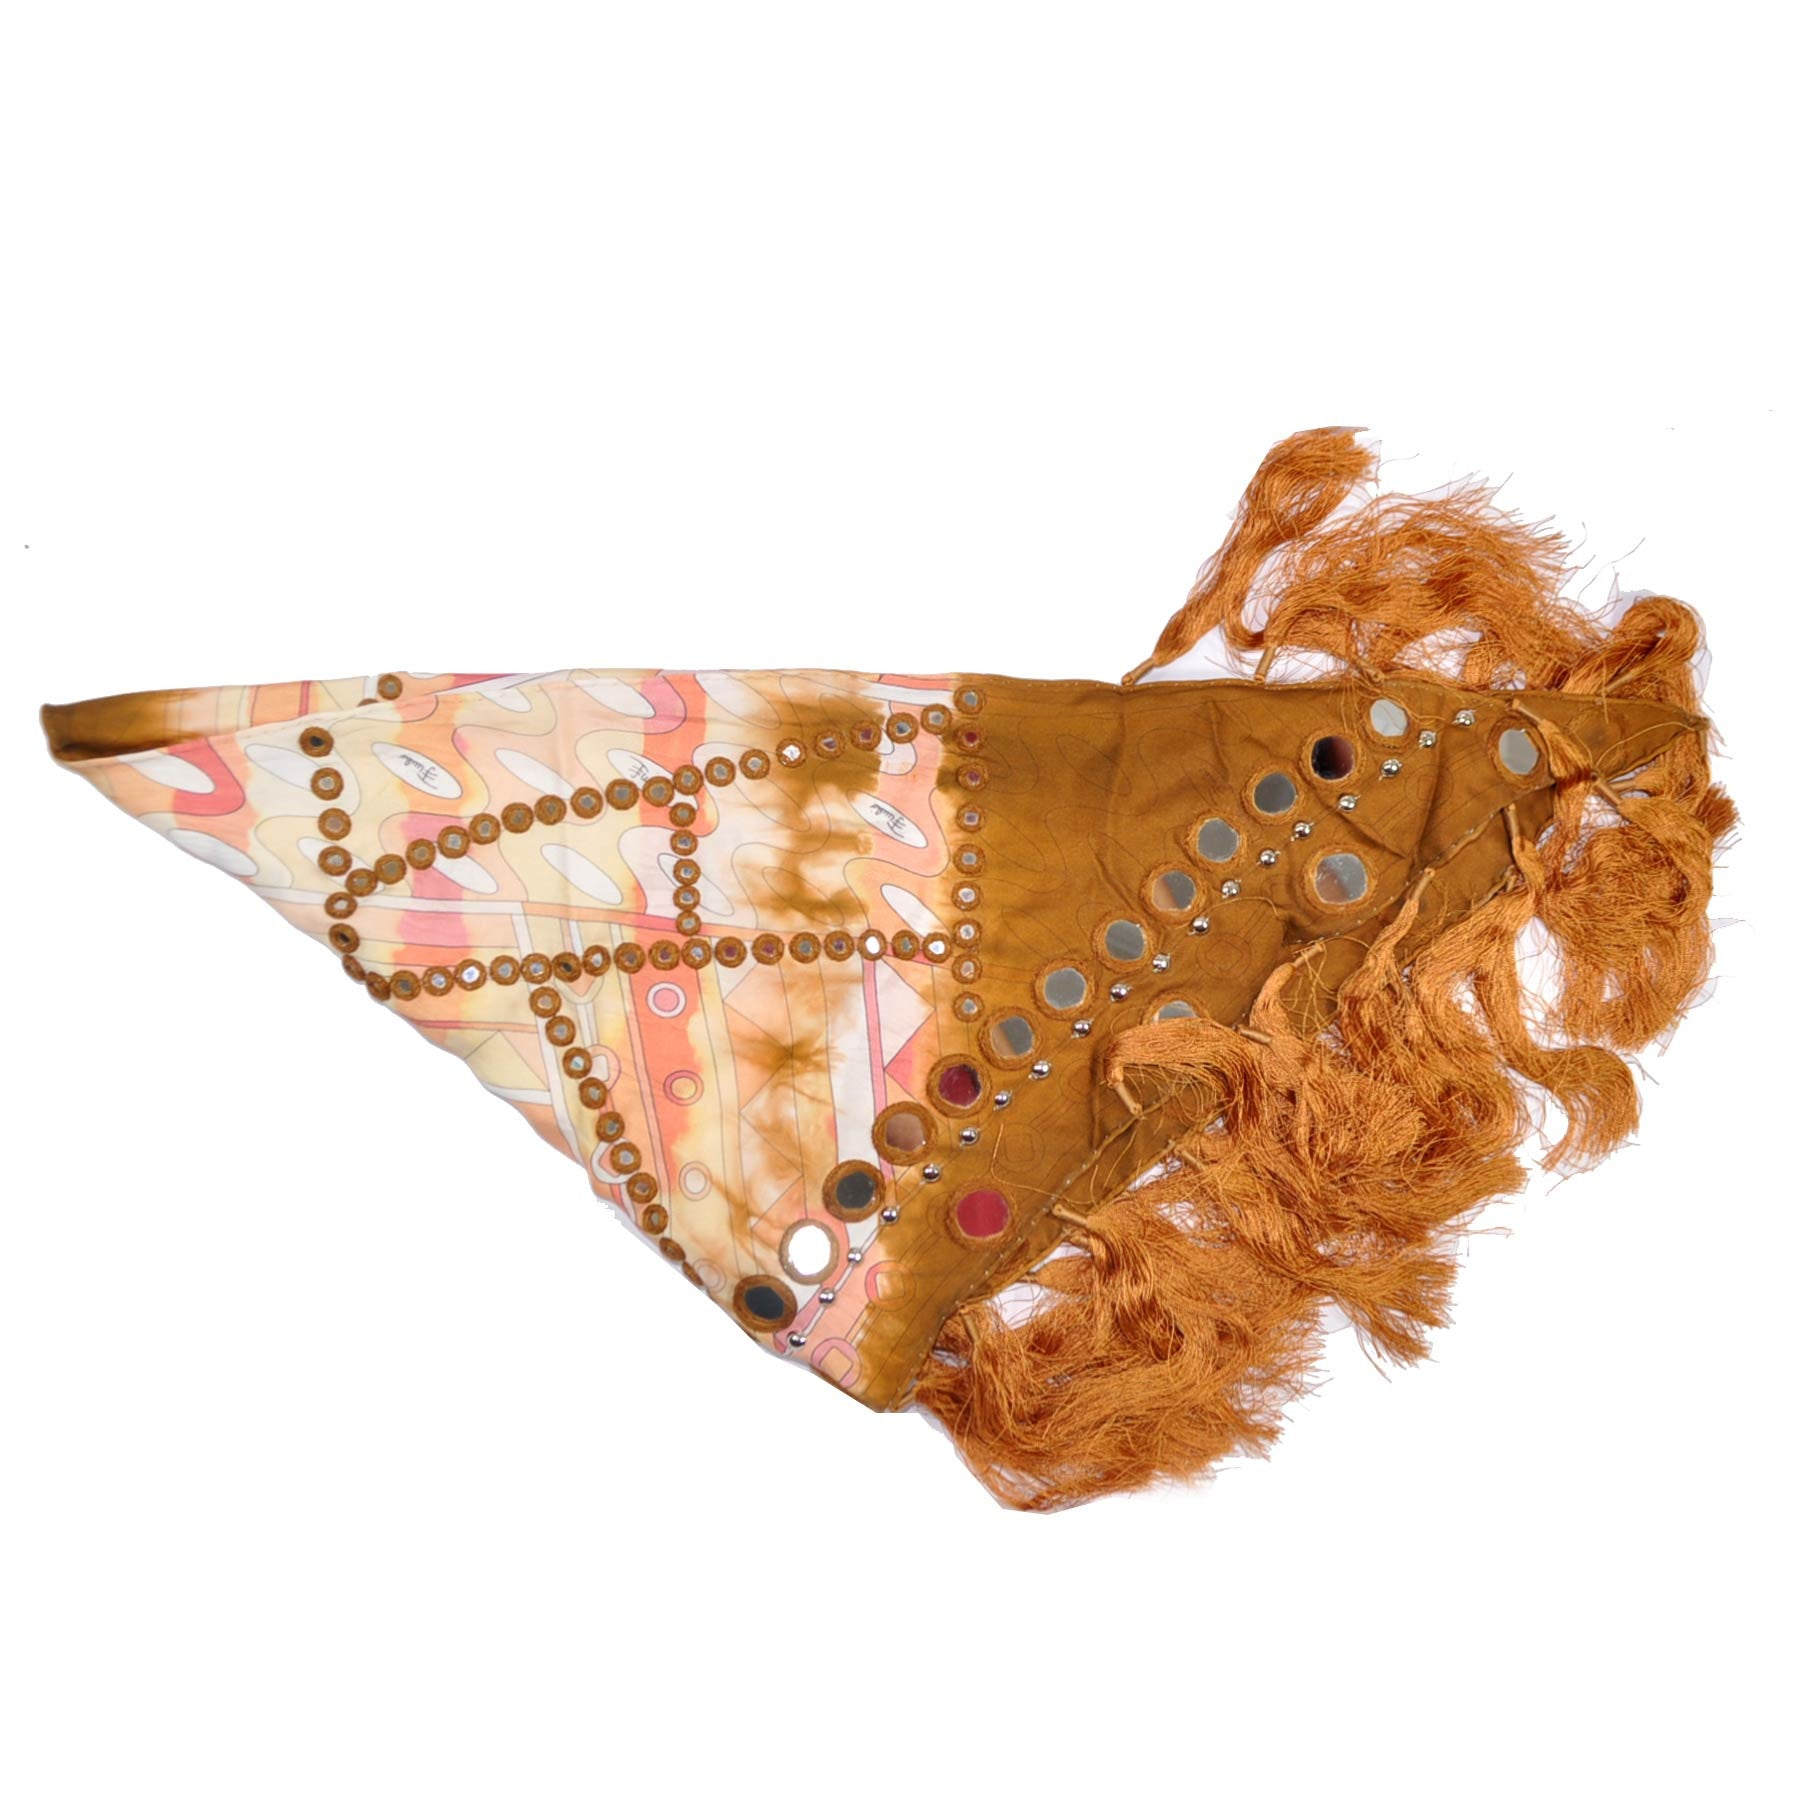 Emilio Pucci Square Silk Triangle Scarf Peach Copper Antik Fringe